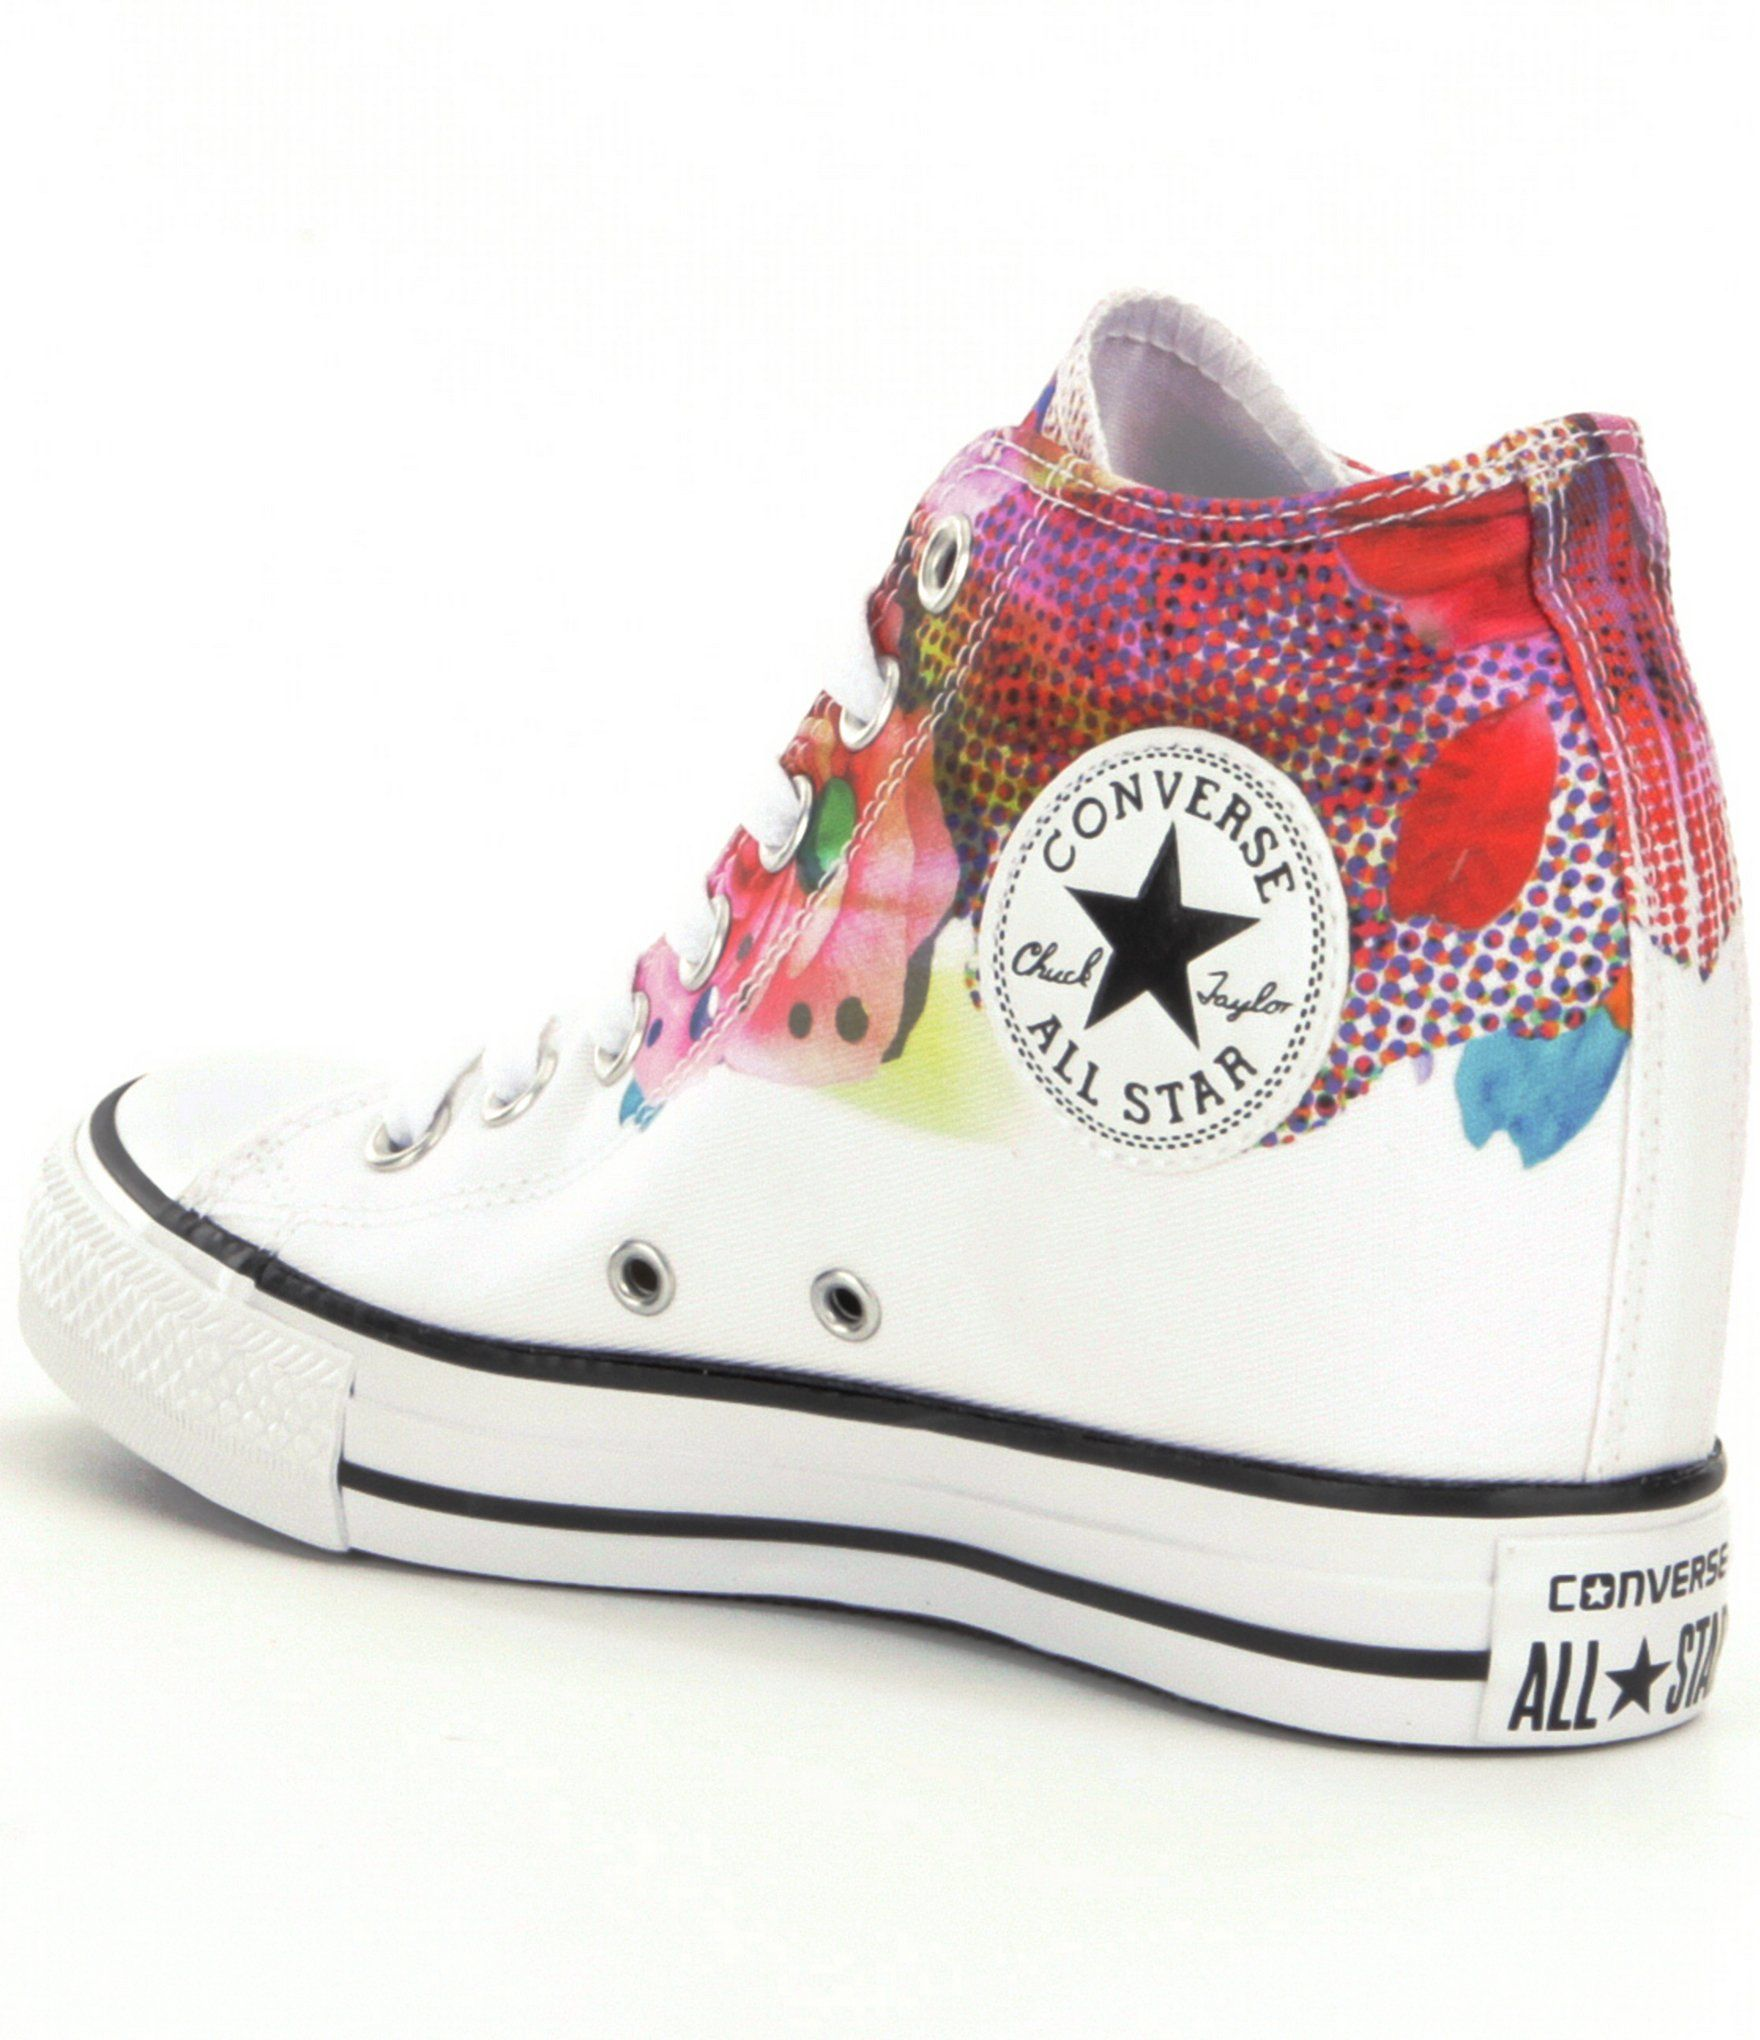 240e95674576 Converse Chuck Taylor® All Star® Lux Women´s Wedge Sneakers in White  (White Pink Black)